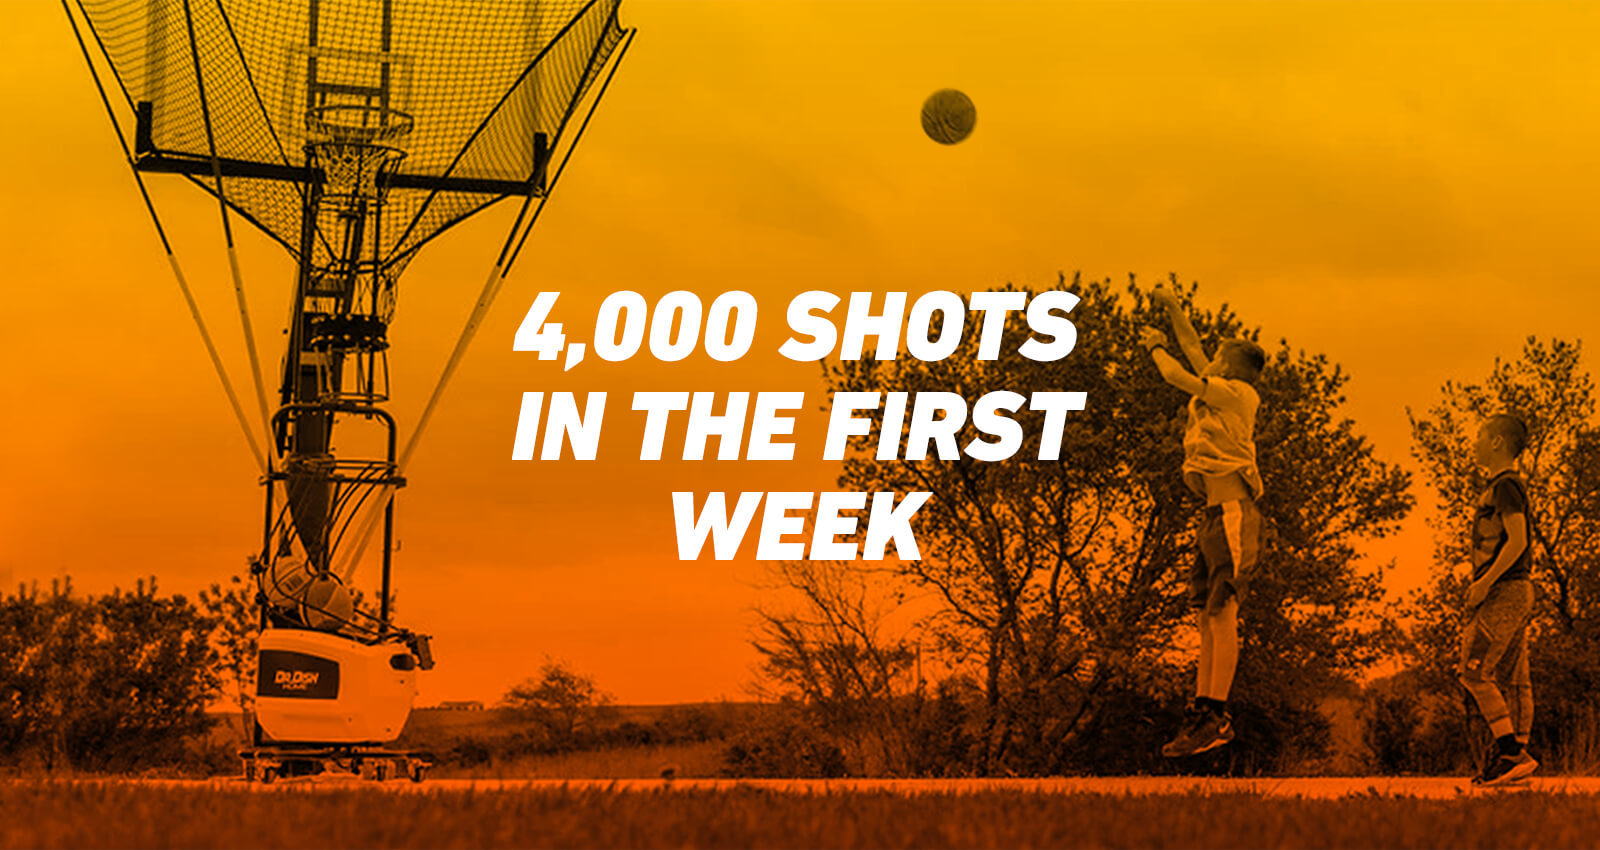 Drake took over 4,000 shots in the first week